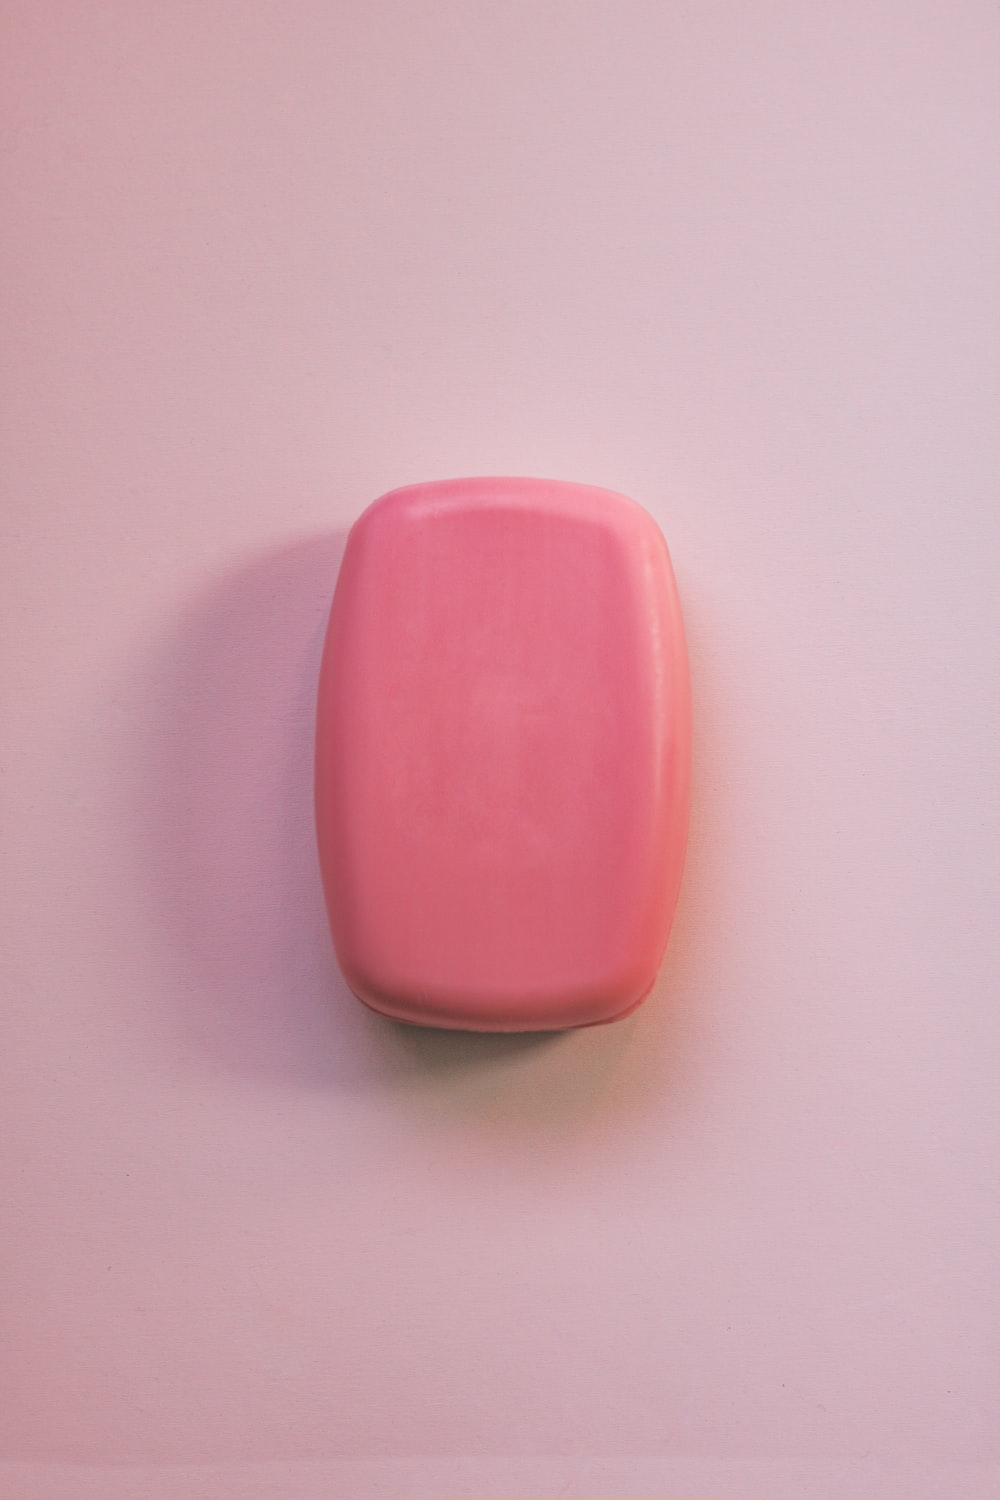 pink plastic case on white surface